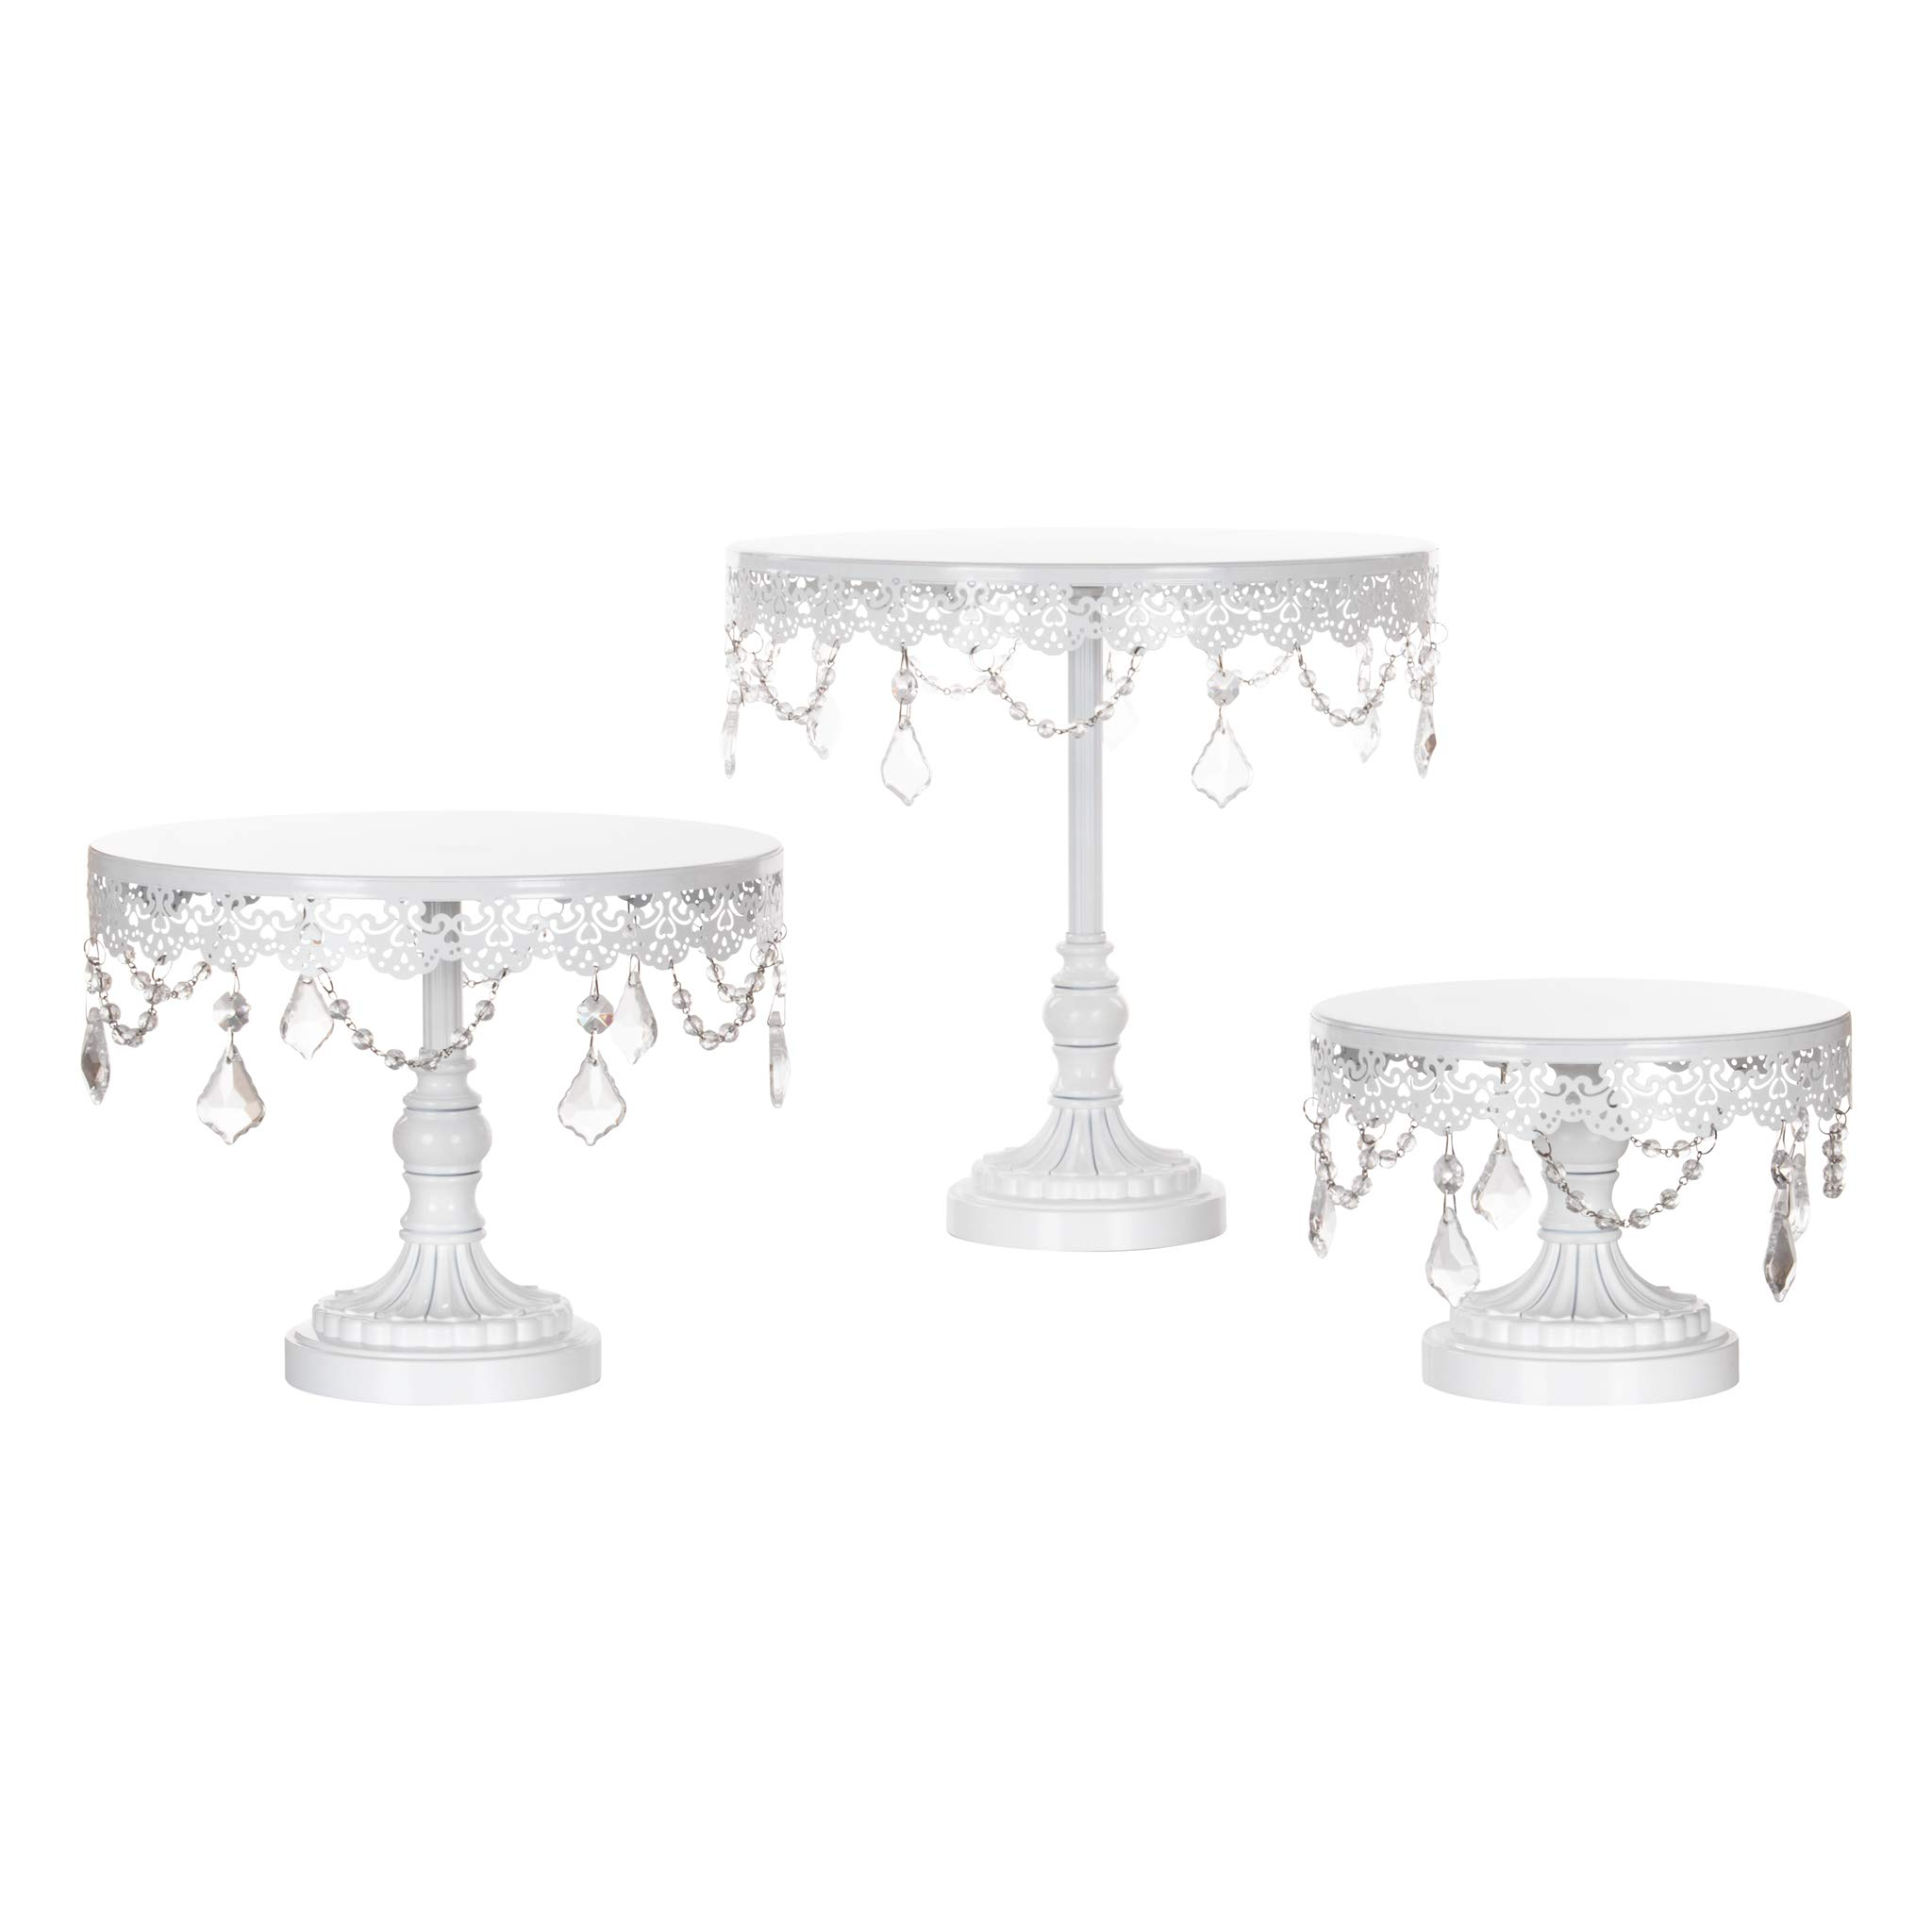 Amalfi Decor Cake Stand Set of 3 Pack, Dessert Cupcake Pastry Candy Display Plate for Wedding Event Birthday Party, Round Metal Pedestal Holder with Crystals, White by Amalfi Décor